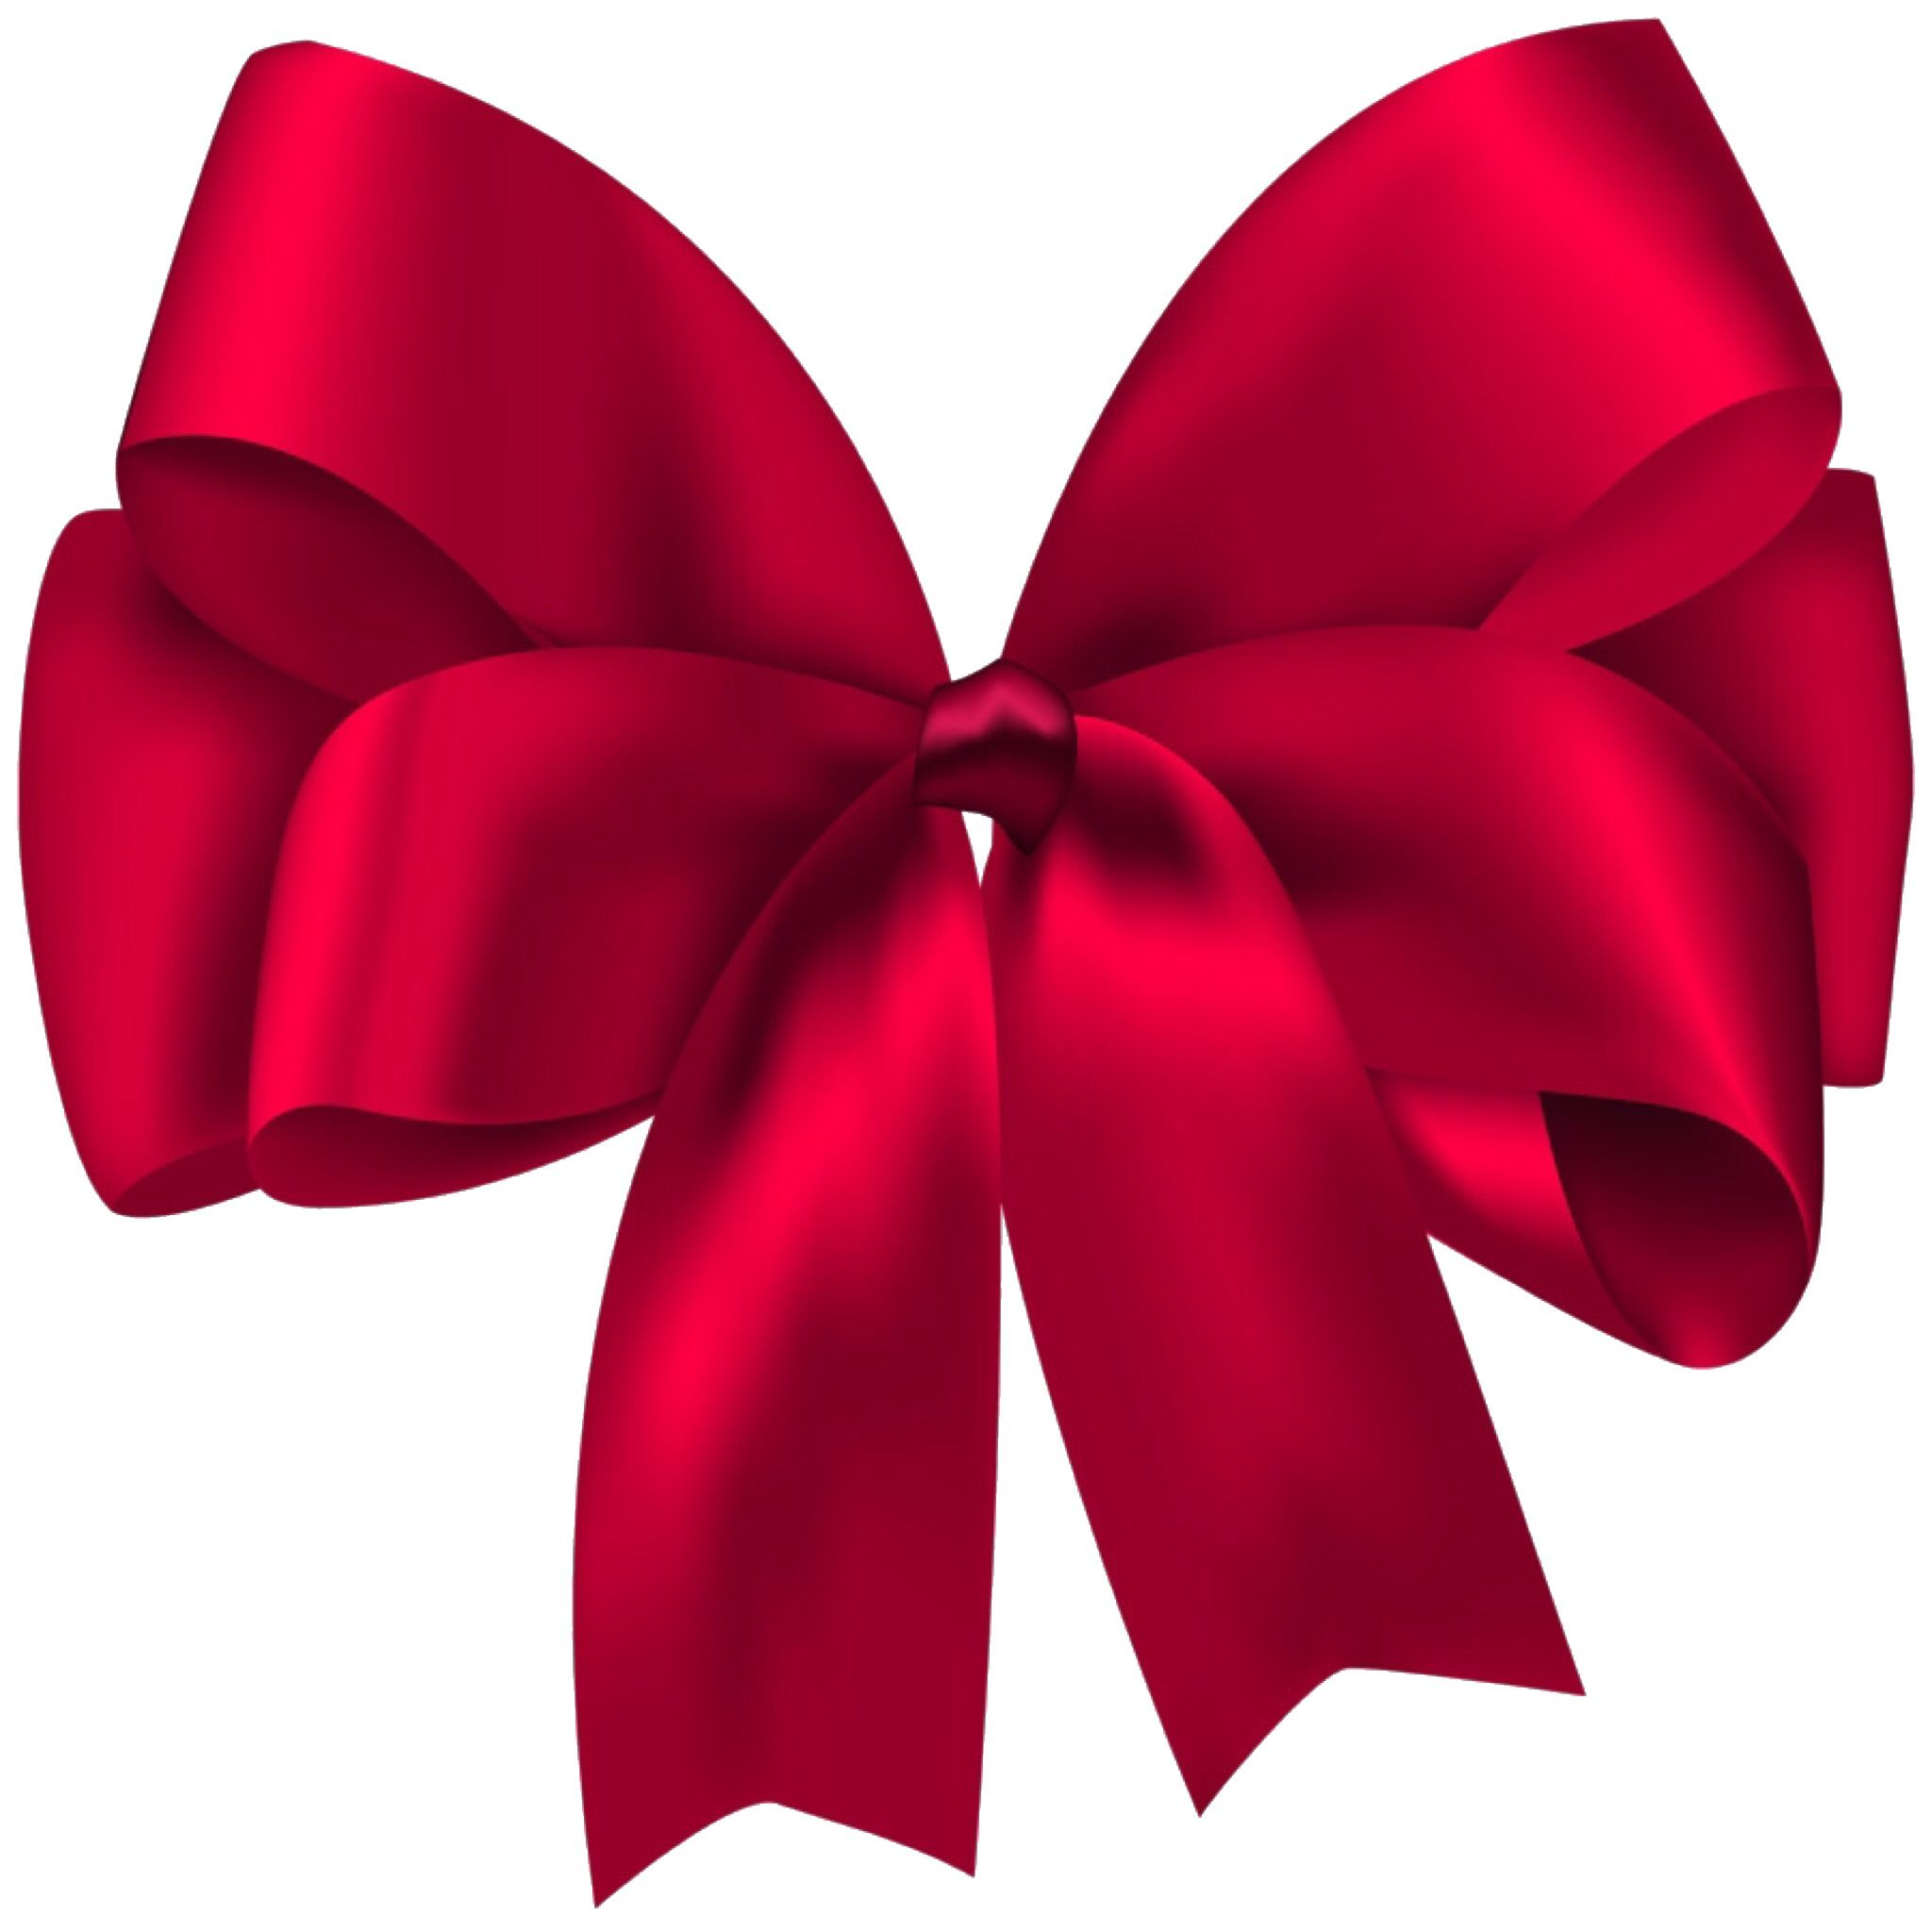 Pin By Loev Imvu On Lace In 2020 Ribbon Png Gift Bows Christmas Ribbon